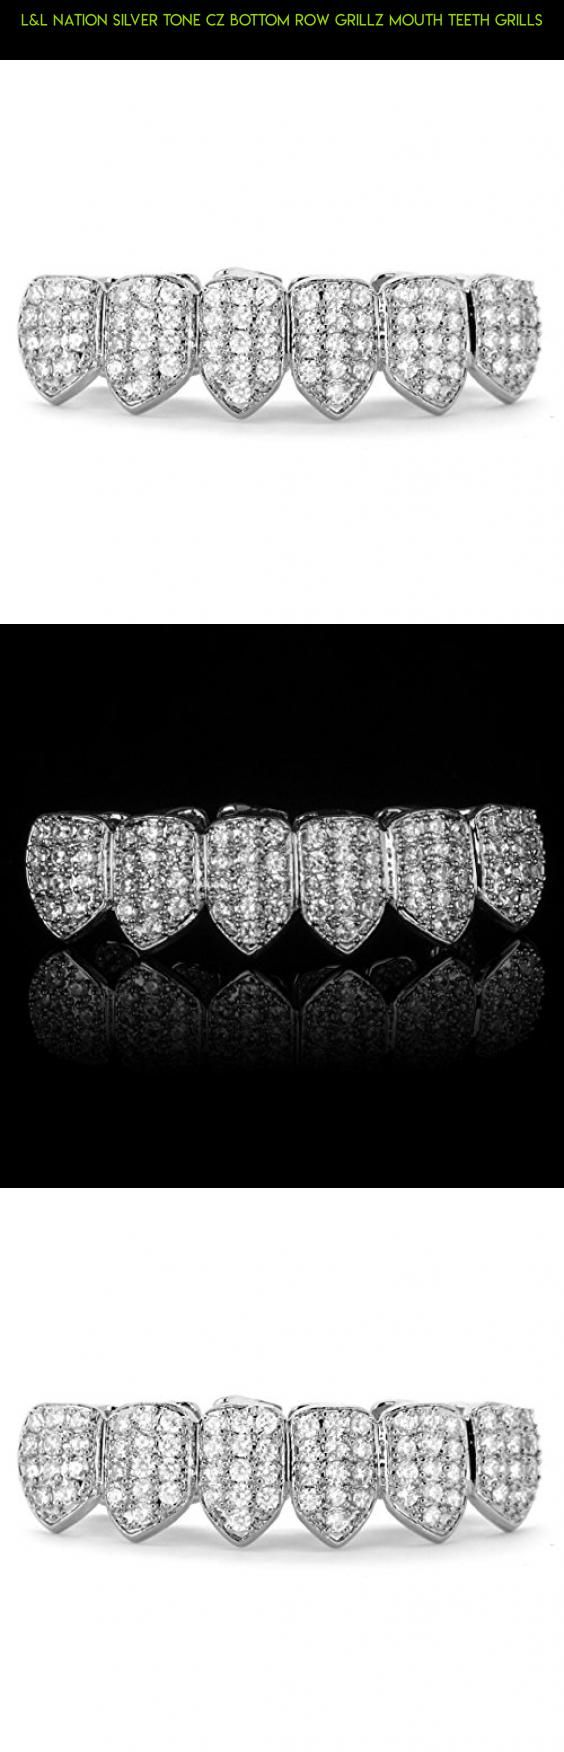 L&L Nation Silver Tone CZ Bottom Row GRILLZ Mouth Teeth Grills #fpv #drone #shopping #products #racing #teeth #tech #parts #plans #your #silver #grills #camera #for #technology #gadgets #kit